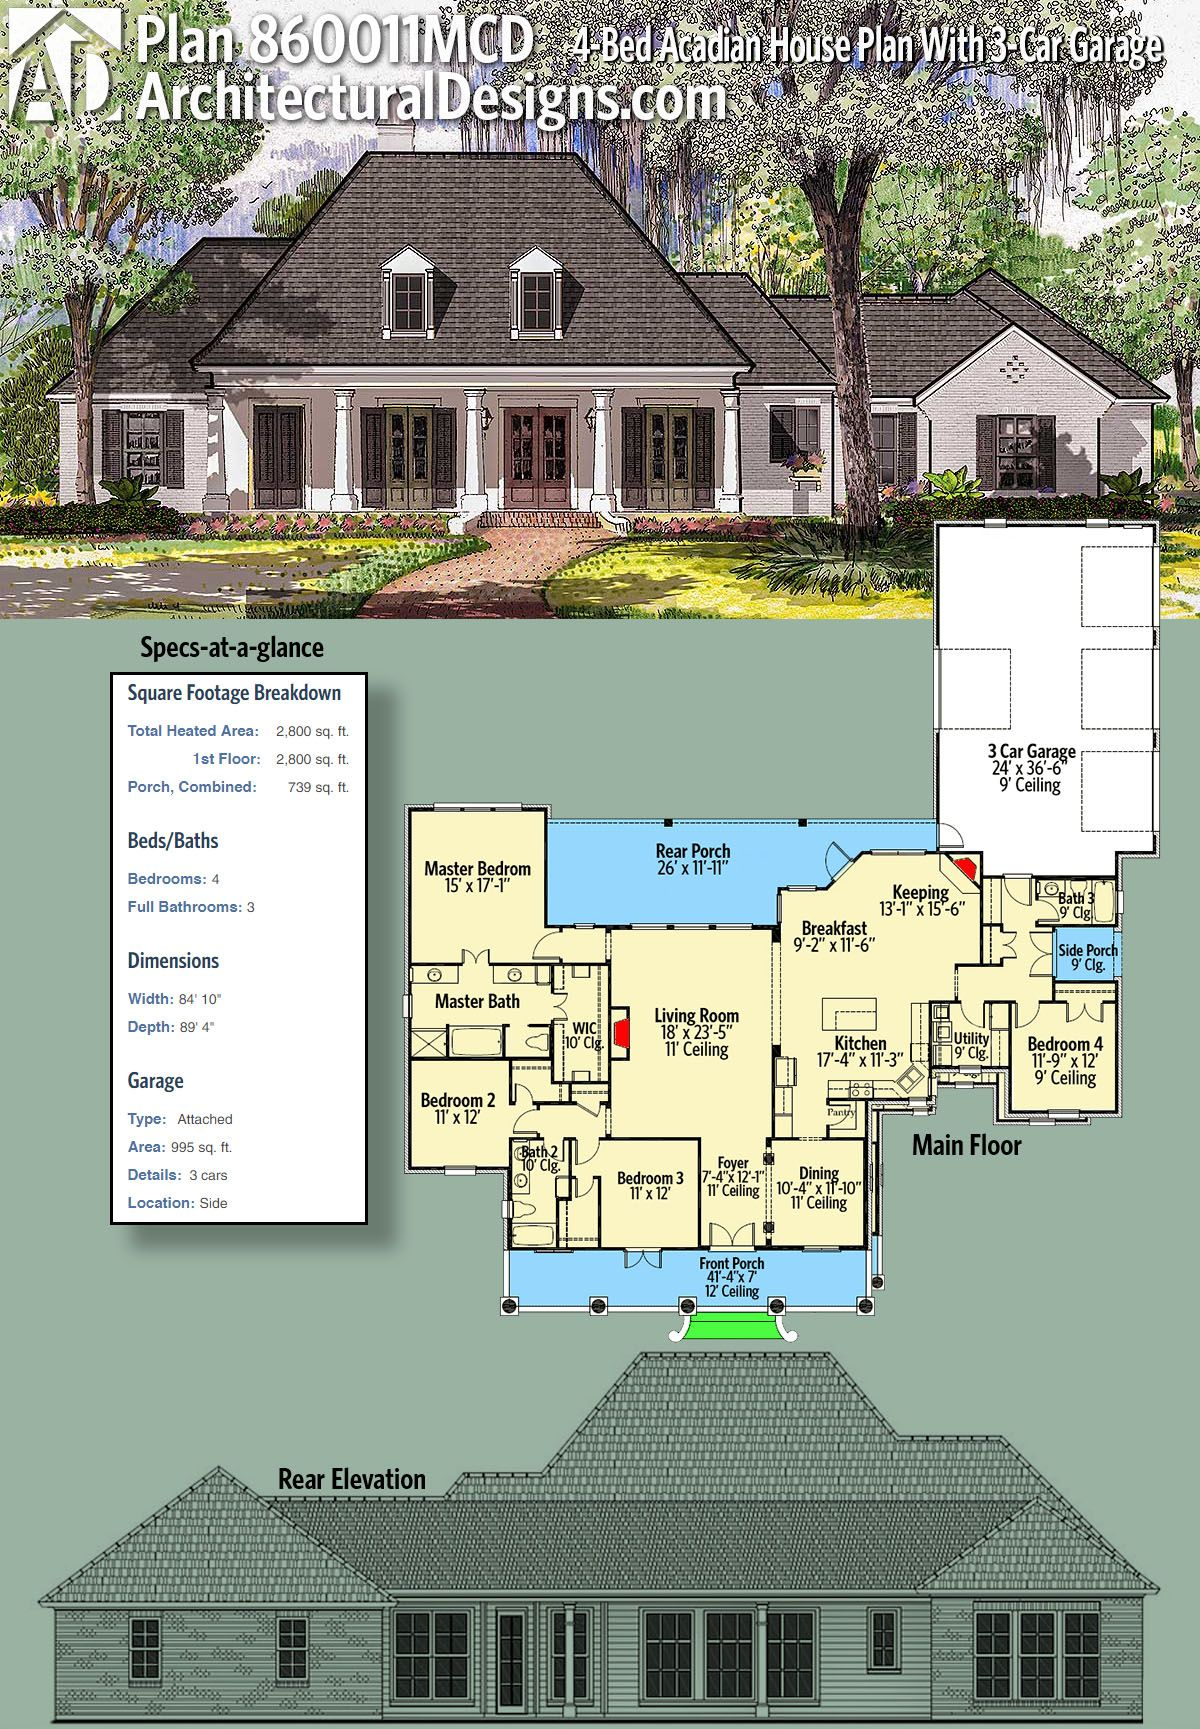 Plan 860011mcd 4 Bed Acadian House Plan With 3 Car Garage